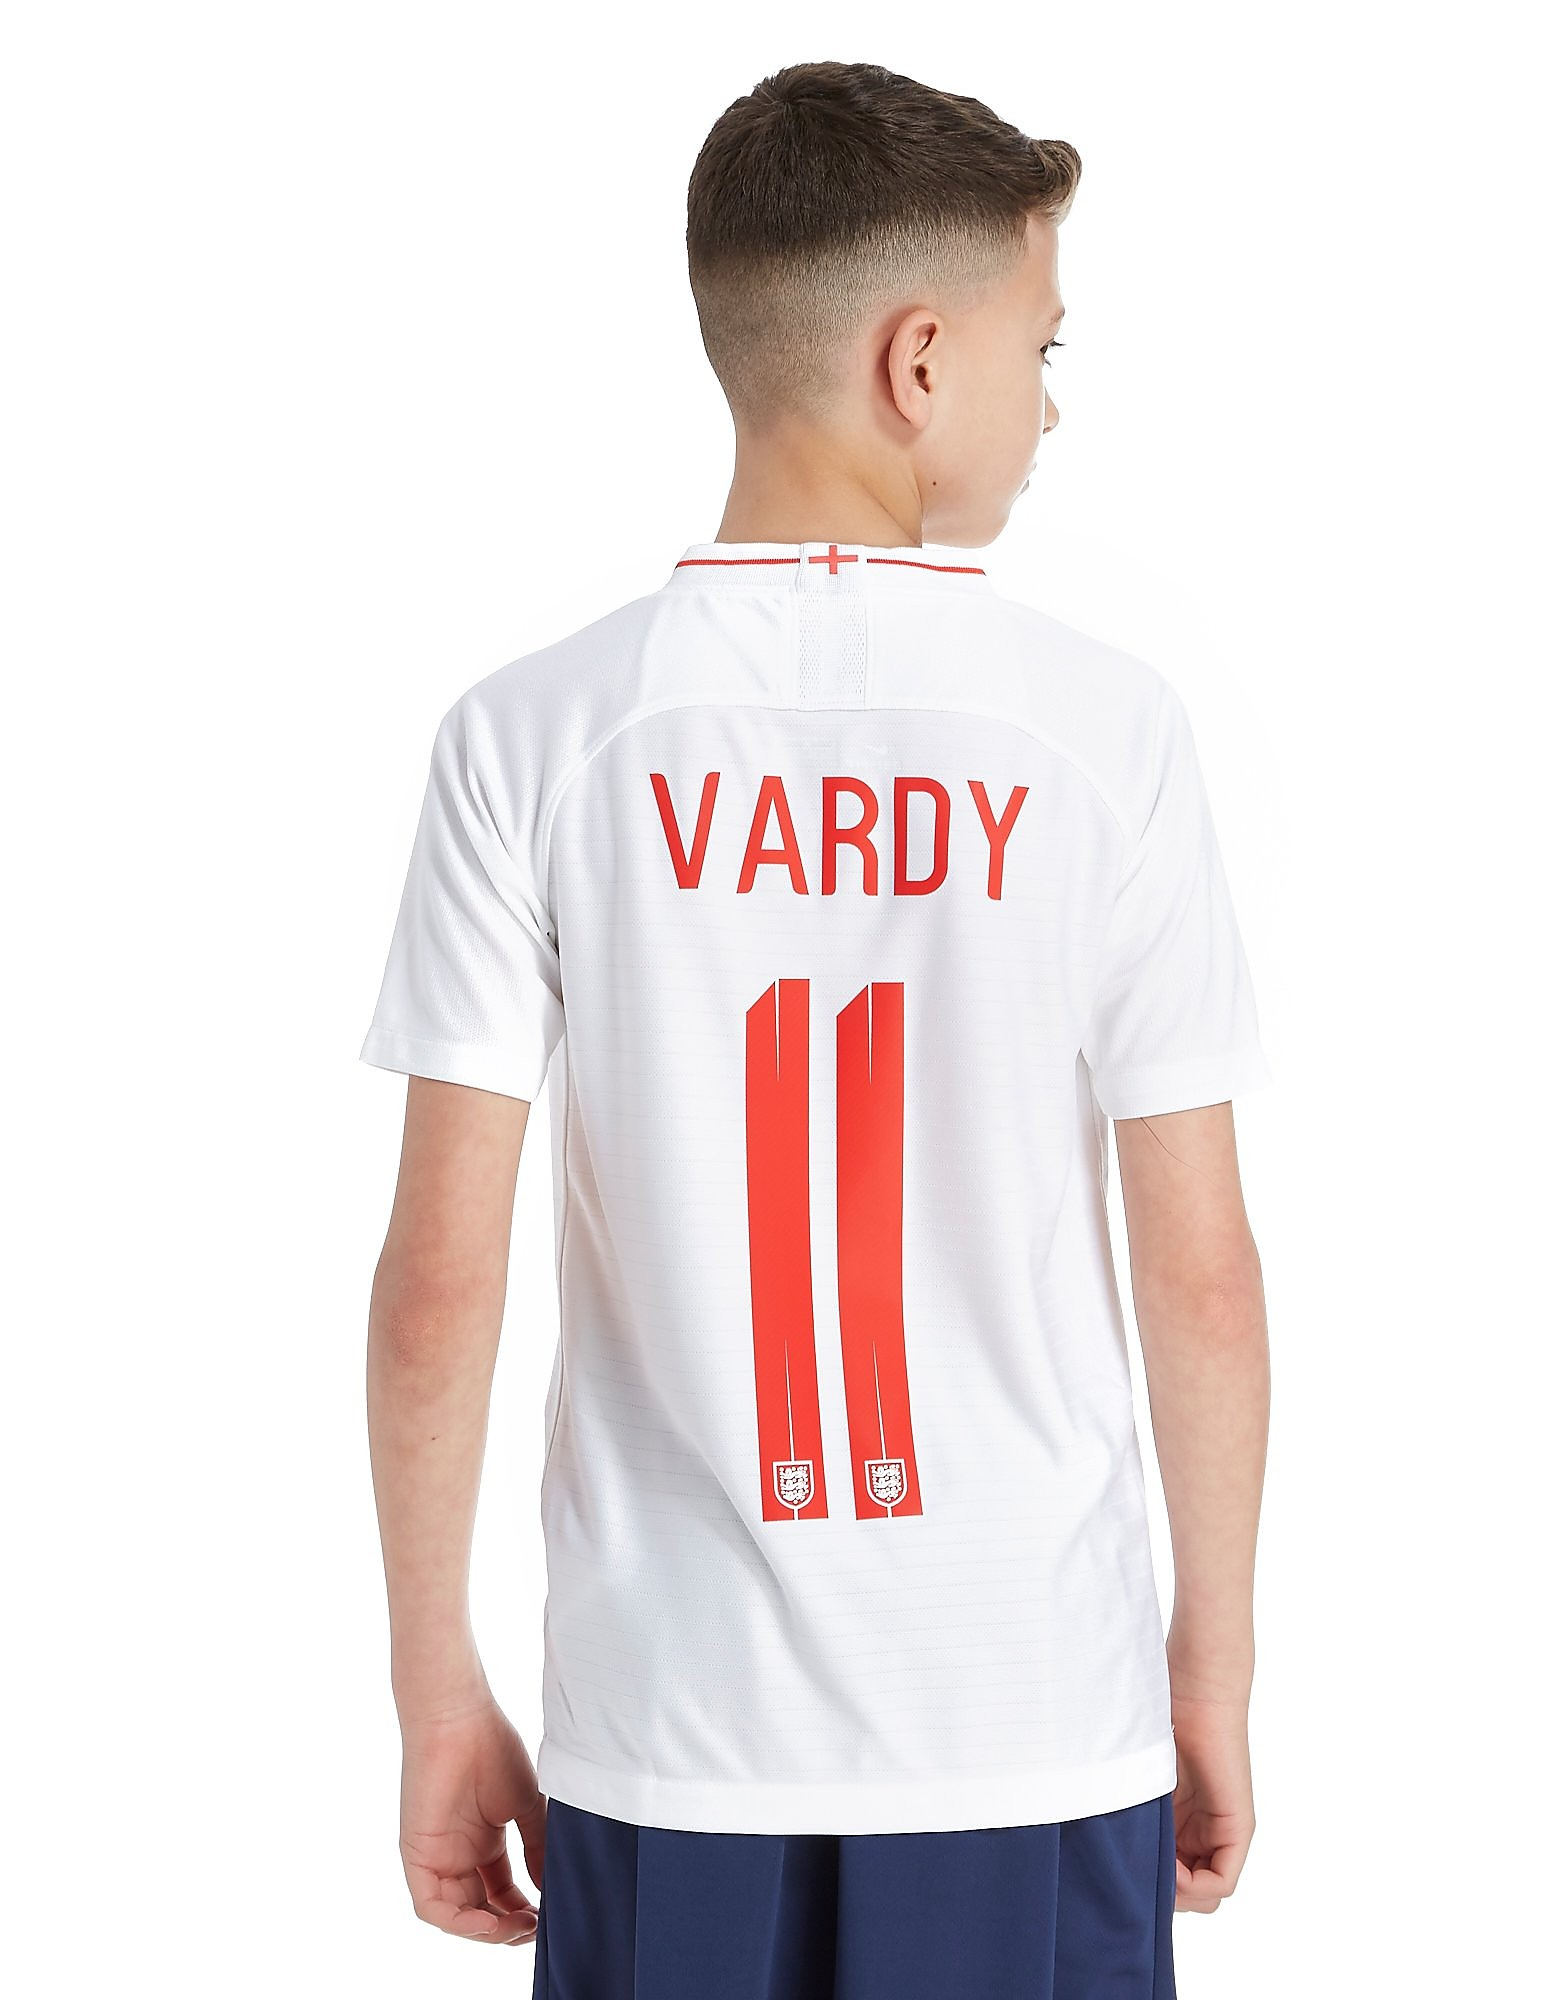 Nike England 2018 Vardy #11 Home Shirt Junior